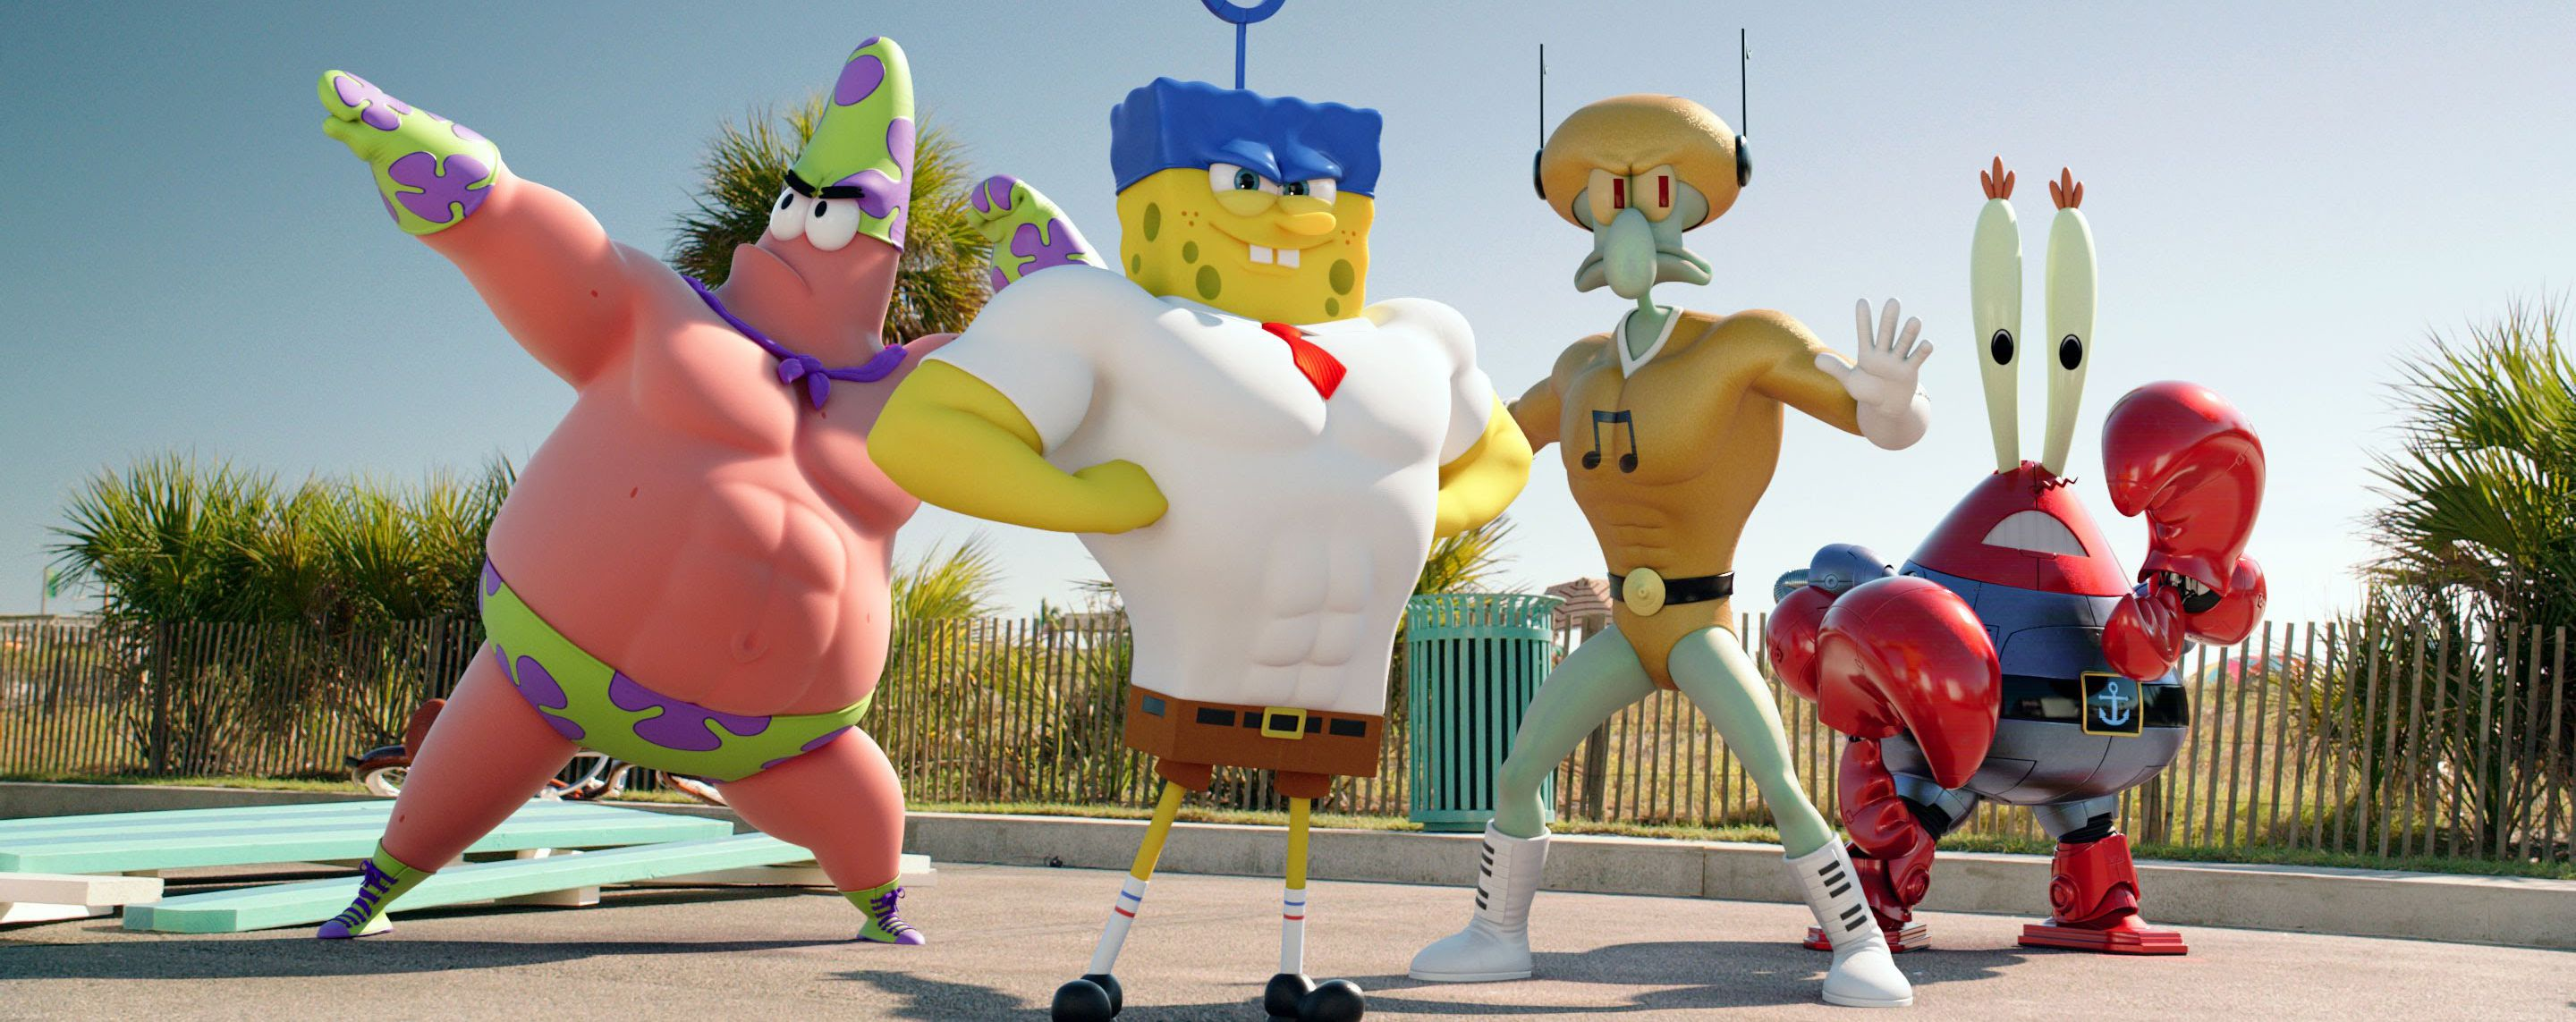 Review: The SpongeBob Movie: Sponge Out of Water - Slant